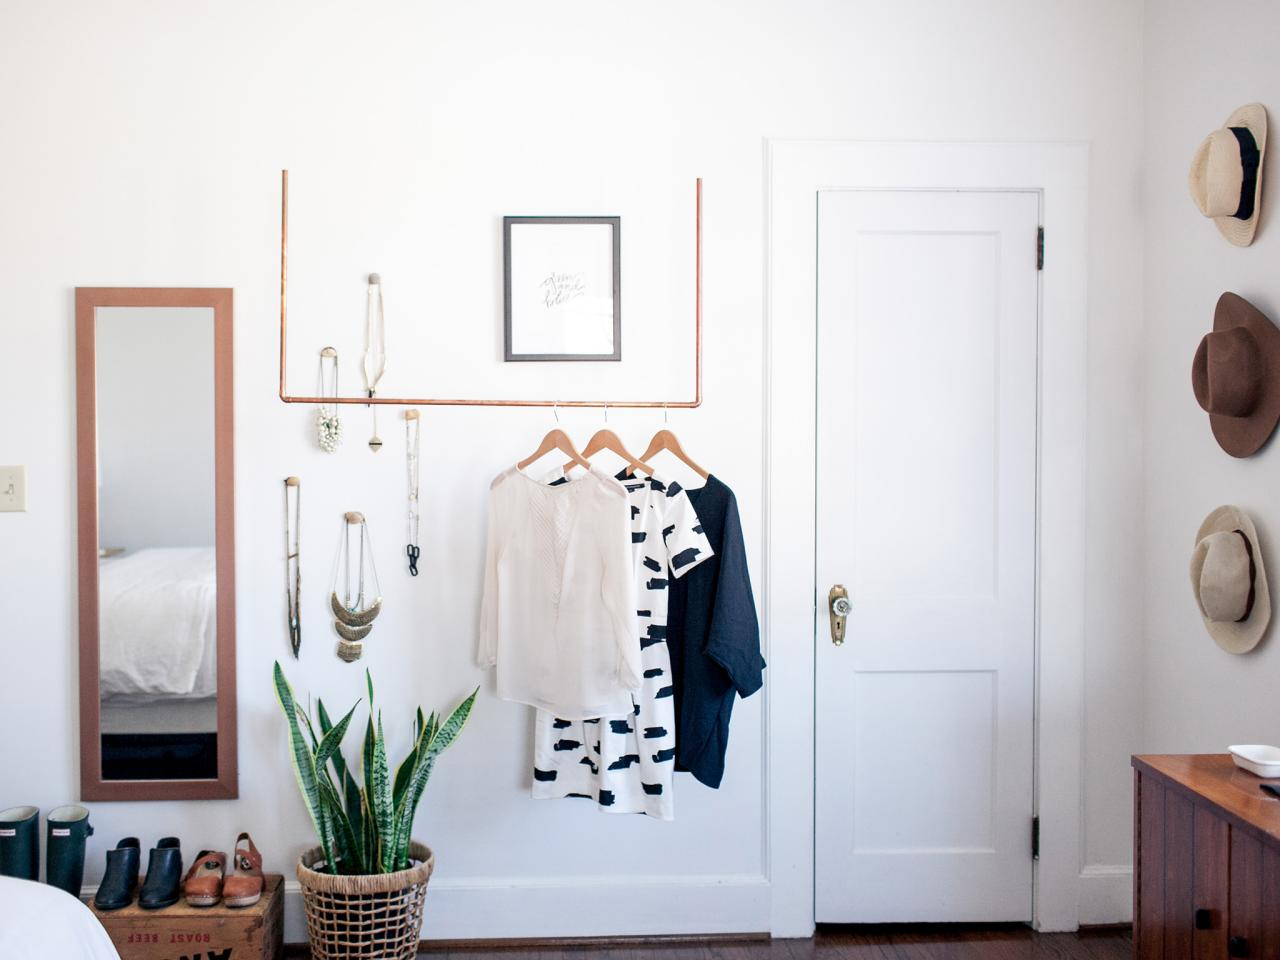 Designing A Closet Diy How To Create A Minimalist Closet Display For A Capsule